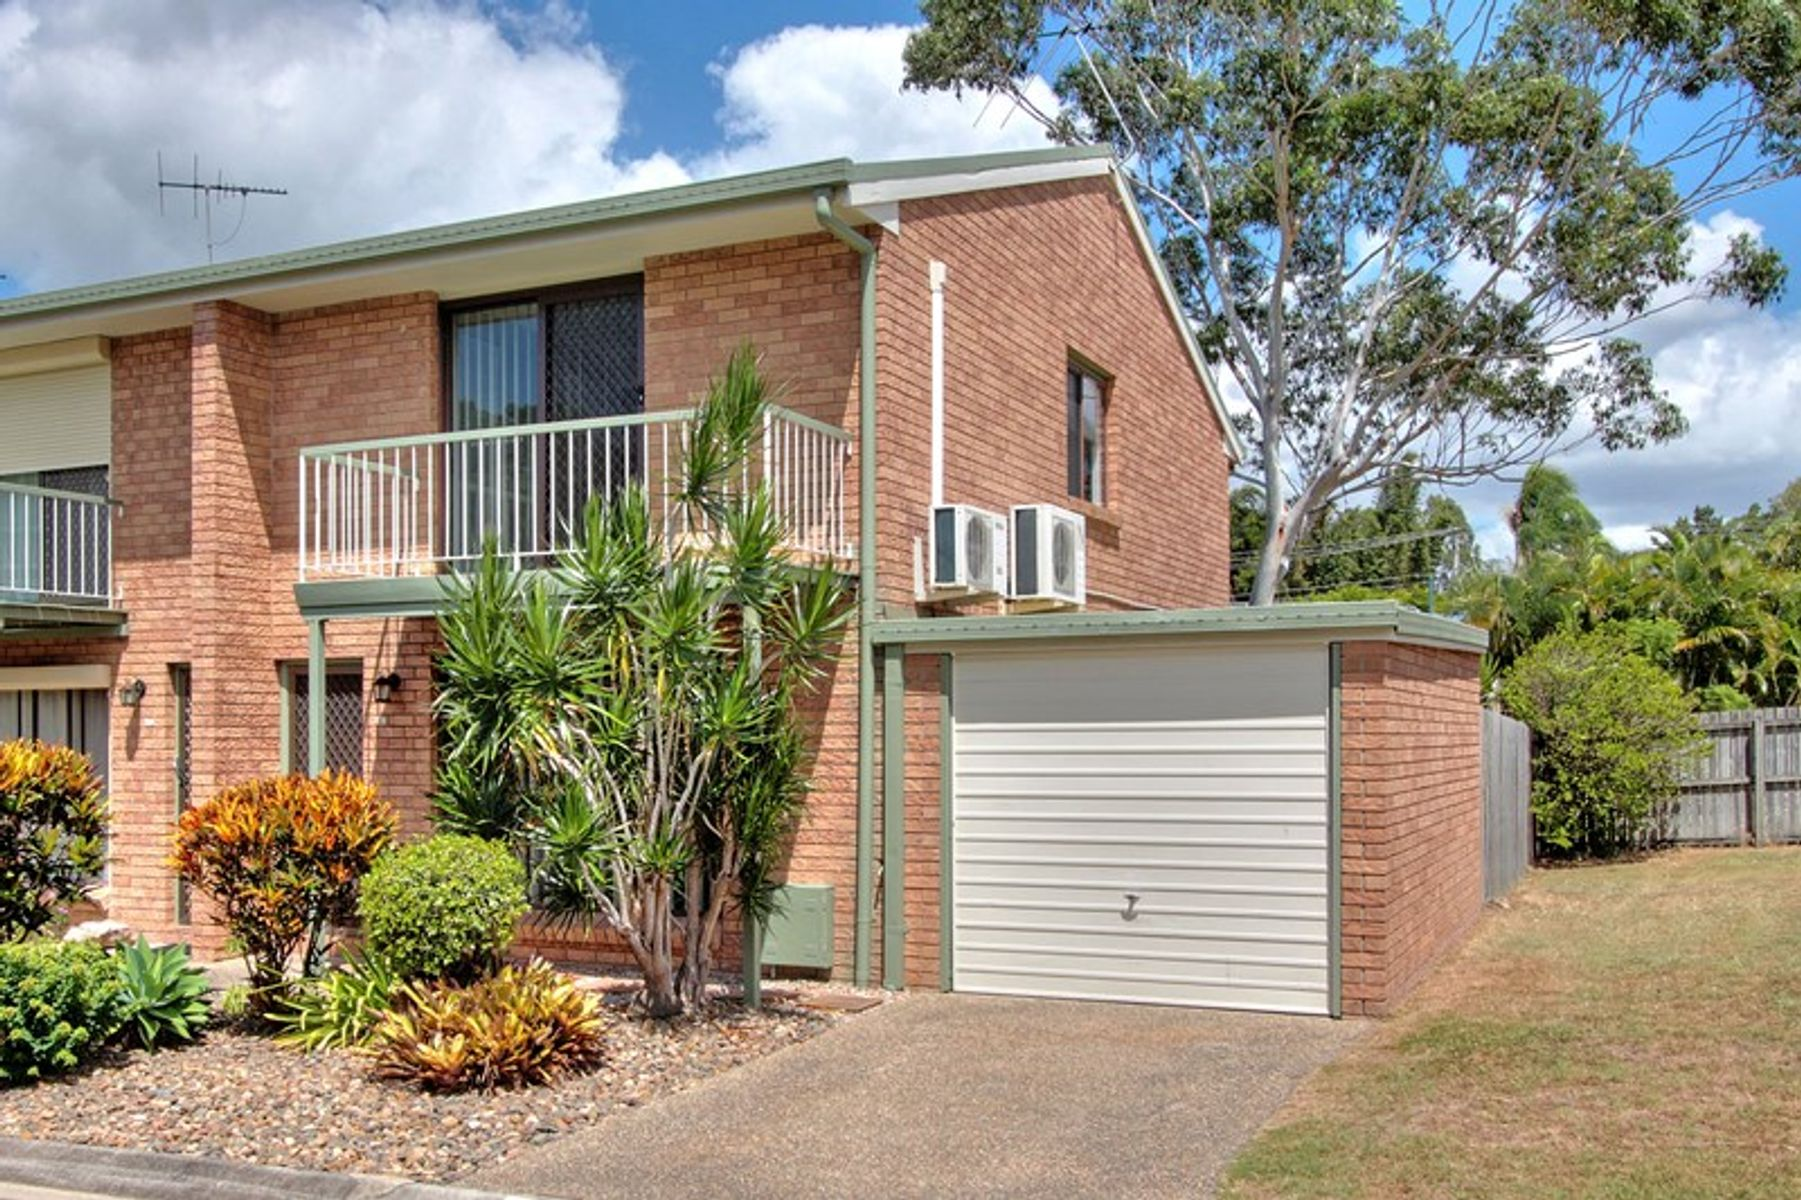 19/5 Palara Street, Rochedale South, QLD 4123